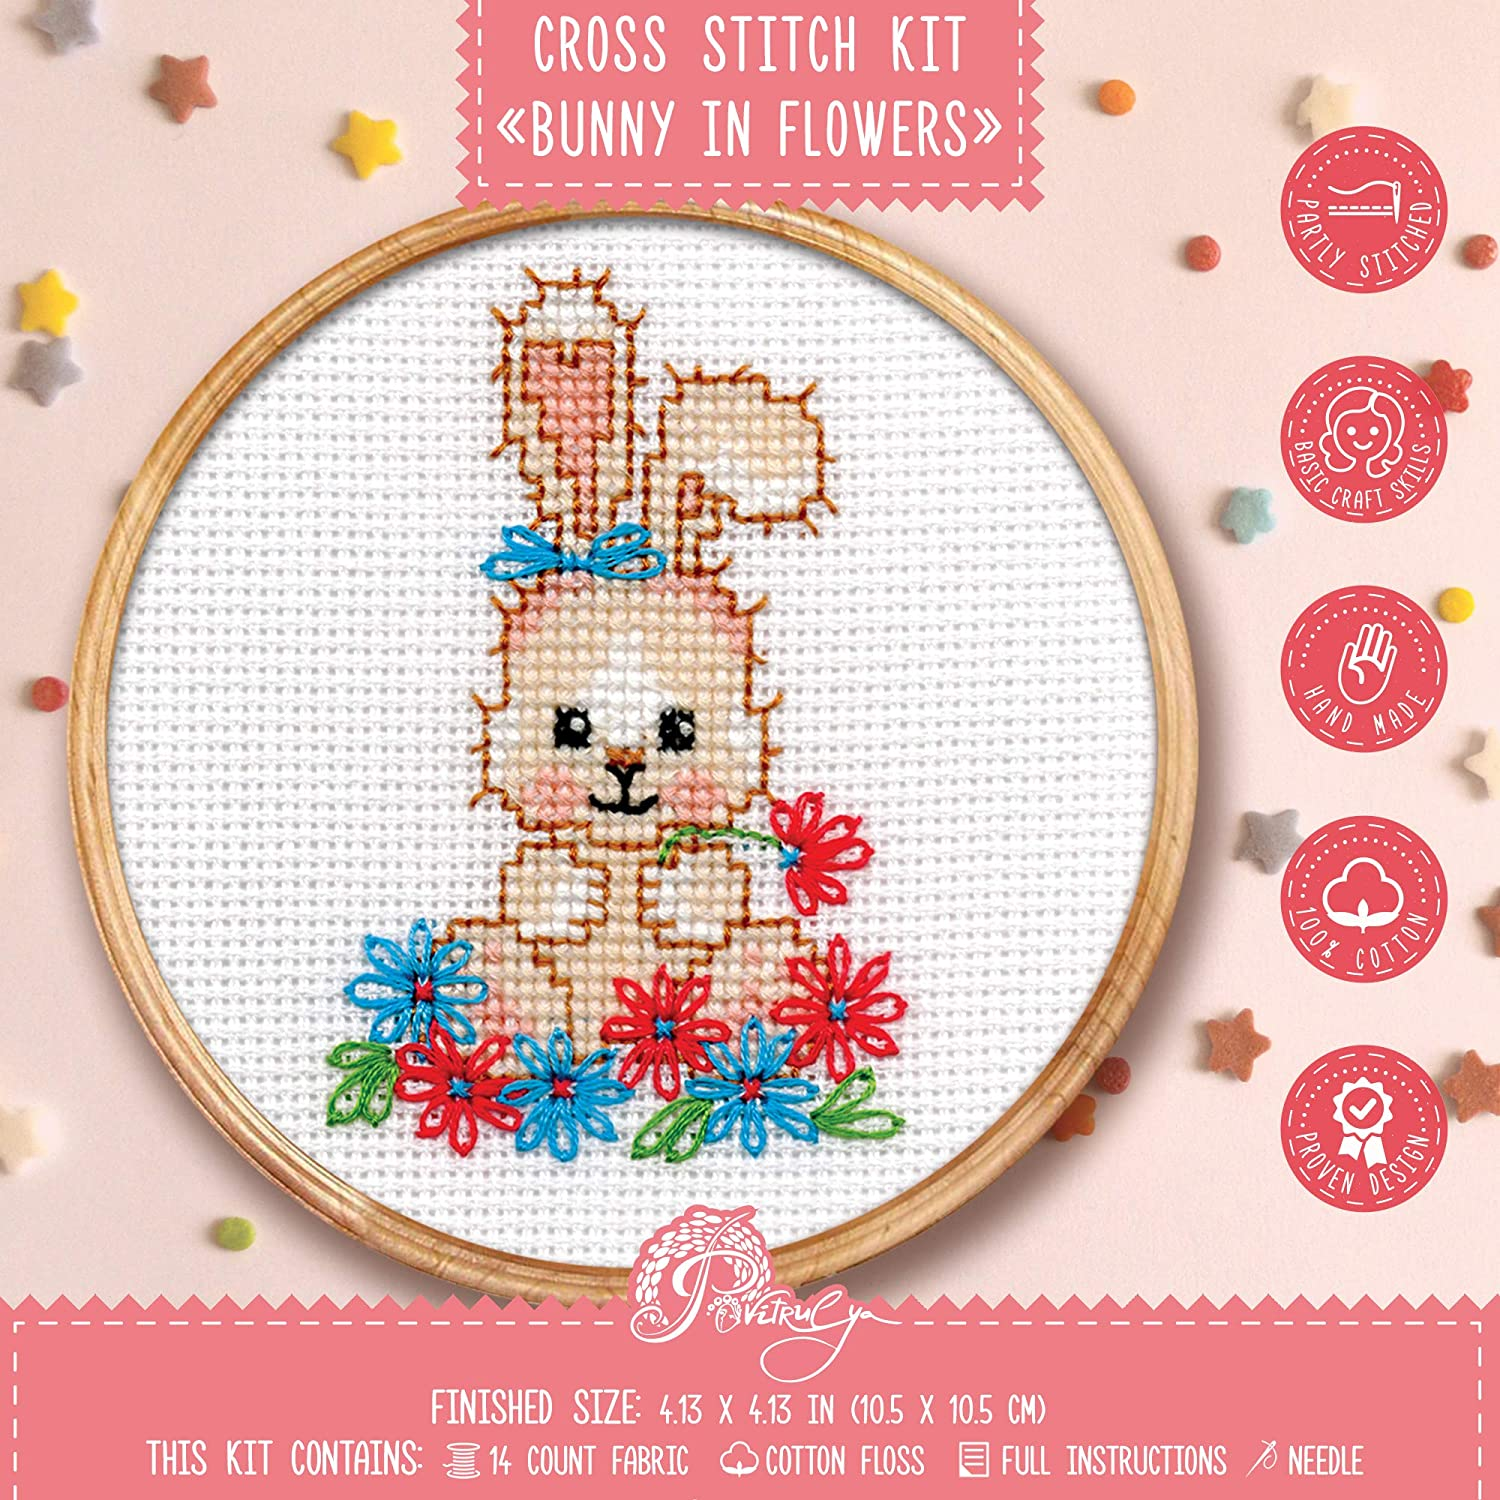 Cross Stitch Kit 'Bunny in Flowers' - DIY Spring Embroidery Design with Baby Rabbit Counted Pattern